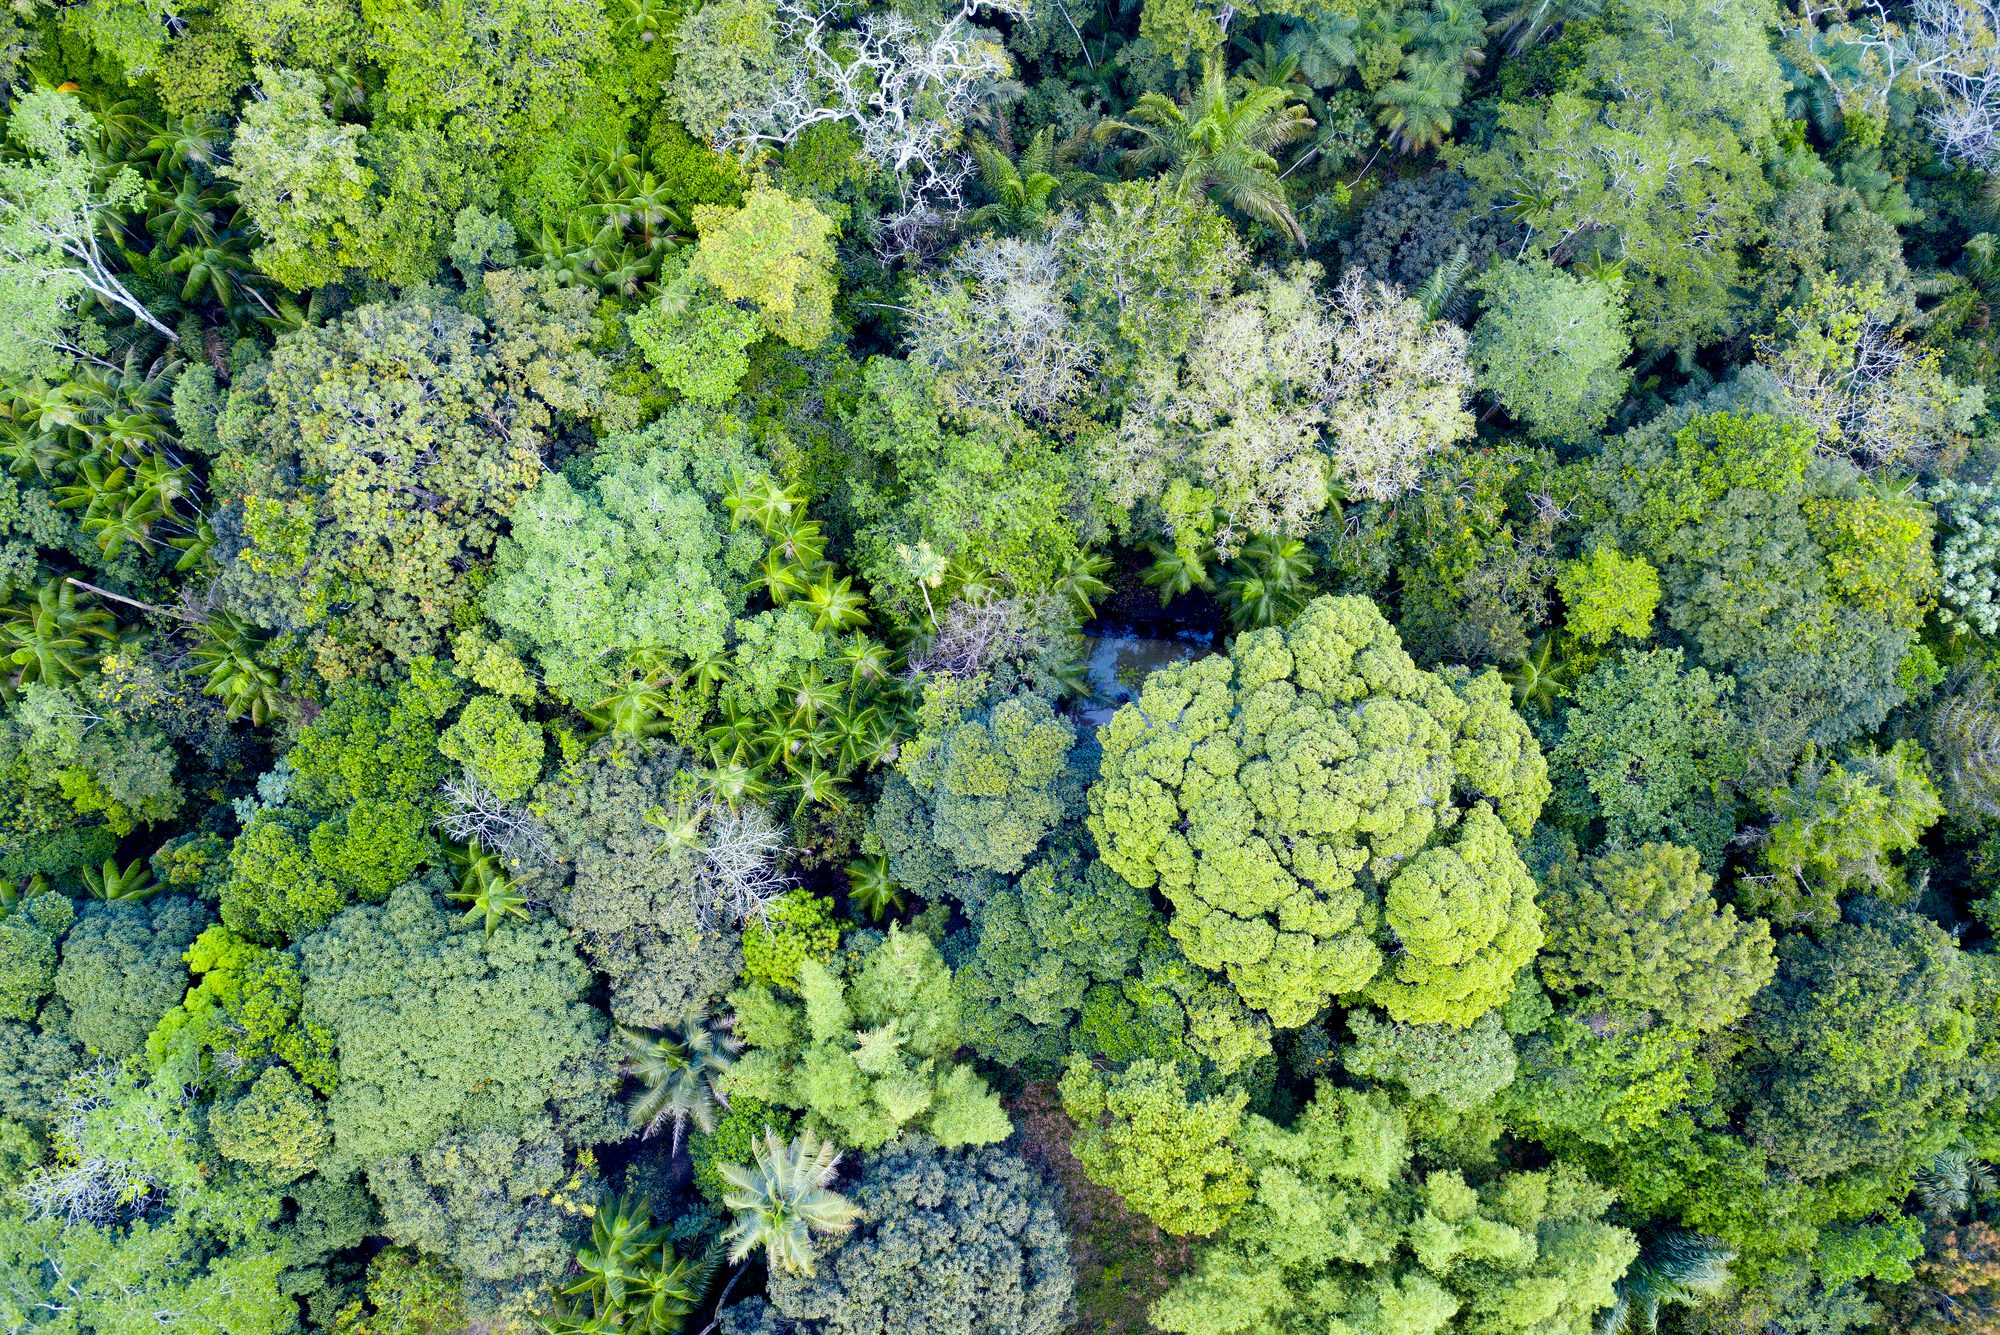 Aerial View Of Treetops In Amazon Rainforest